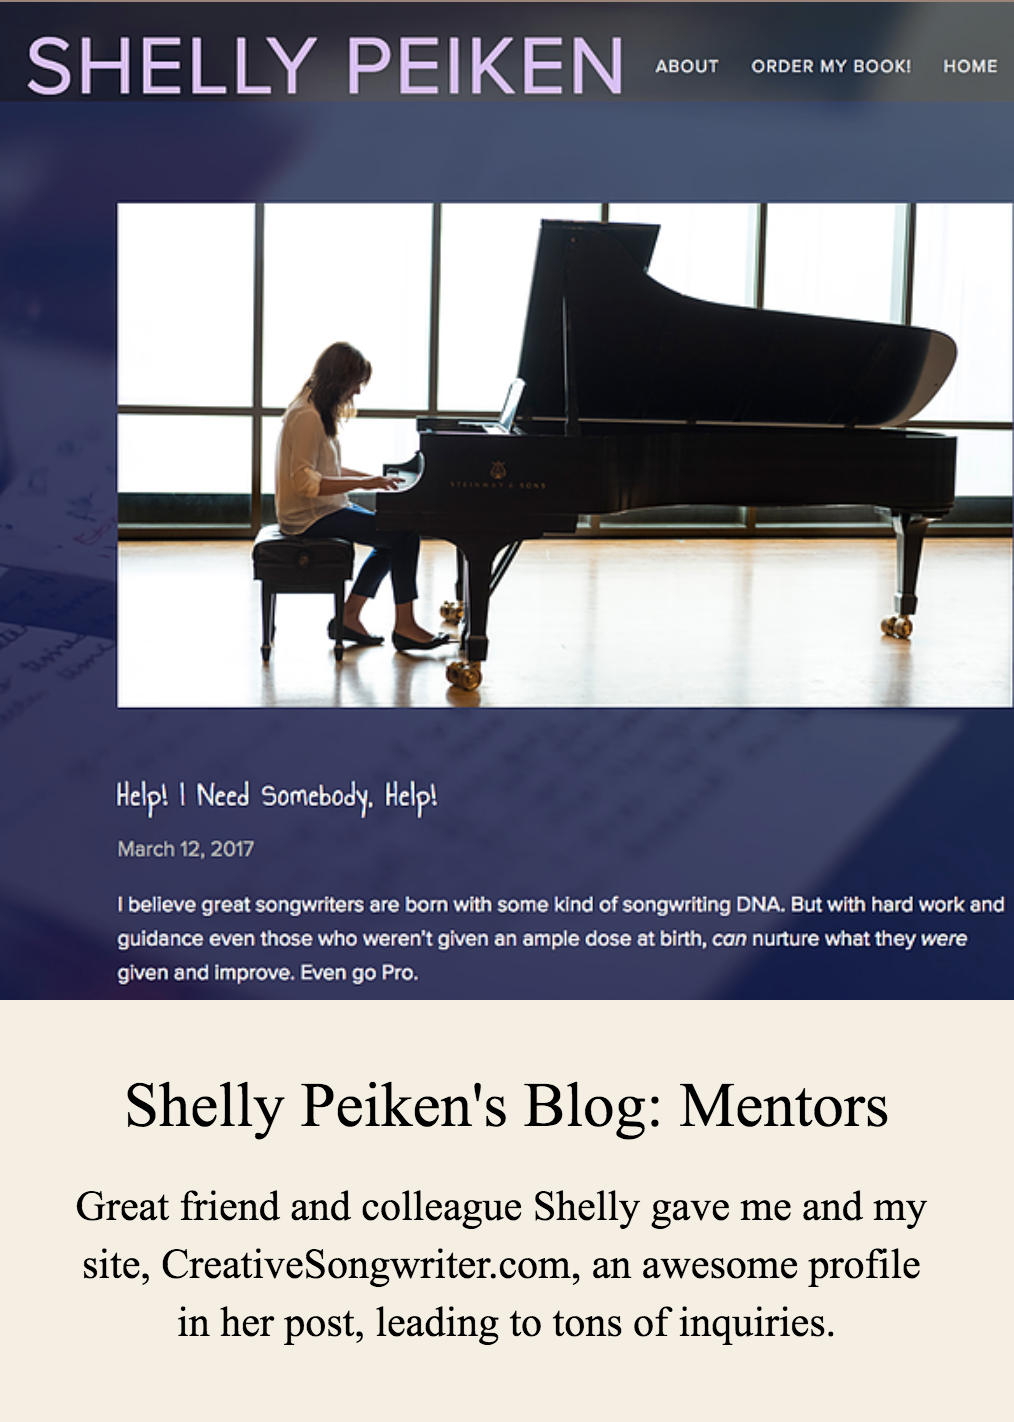 Shelly Peiken's Blog - Mentors